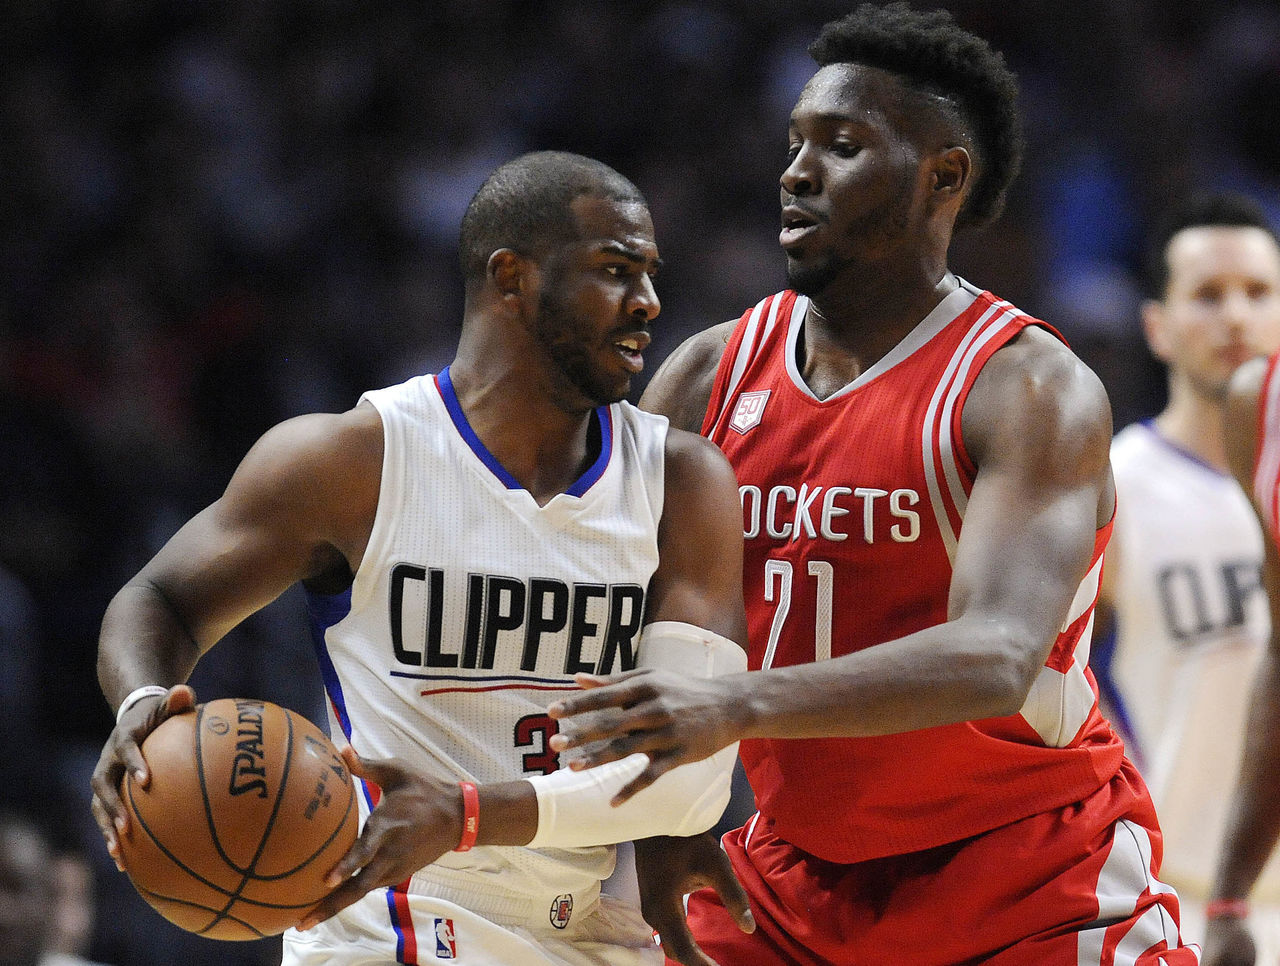 Cropped 2017 04 11t041339z 276093451 nocid rtrmadp 3 nba houston rockets at los angeles clippers